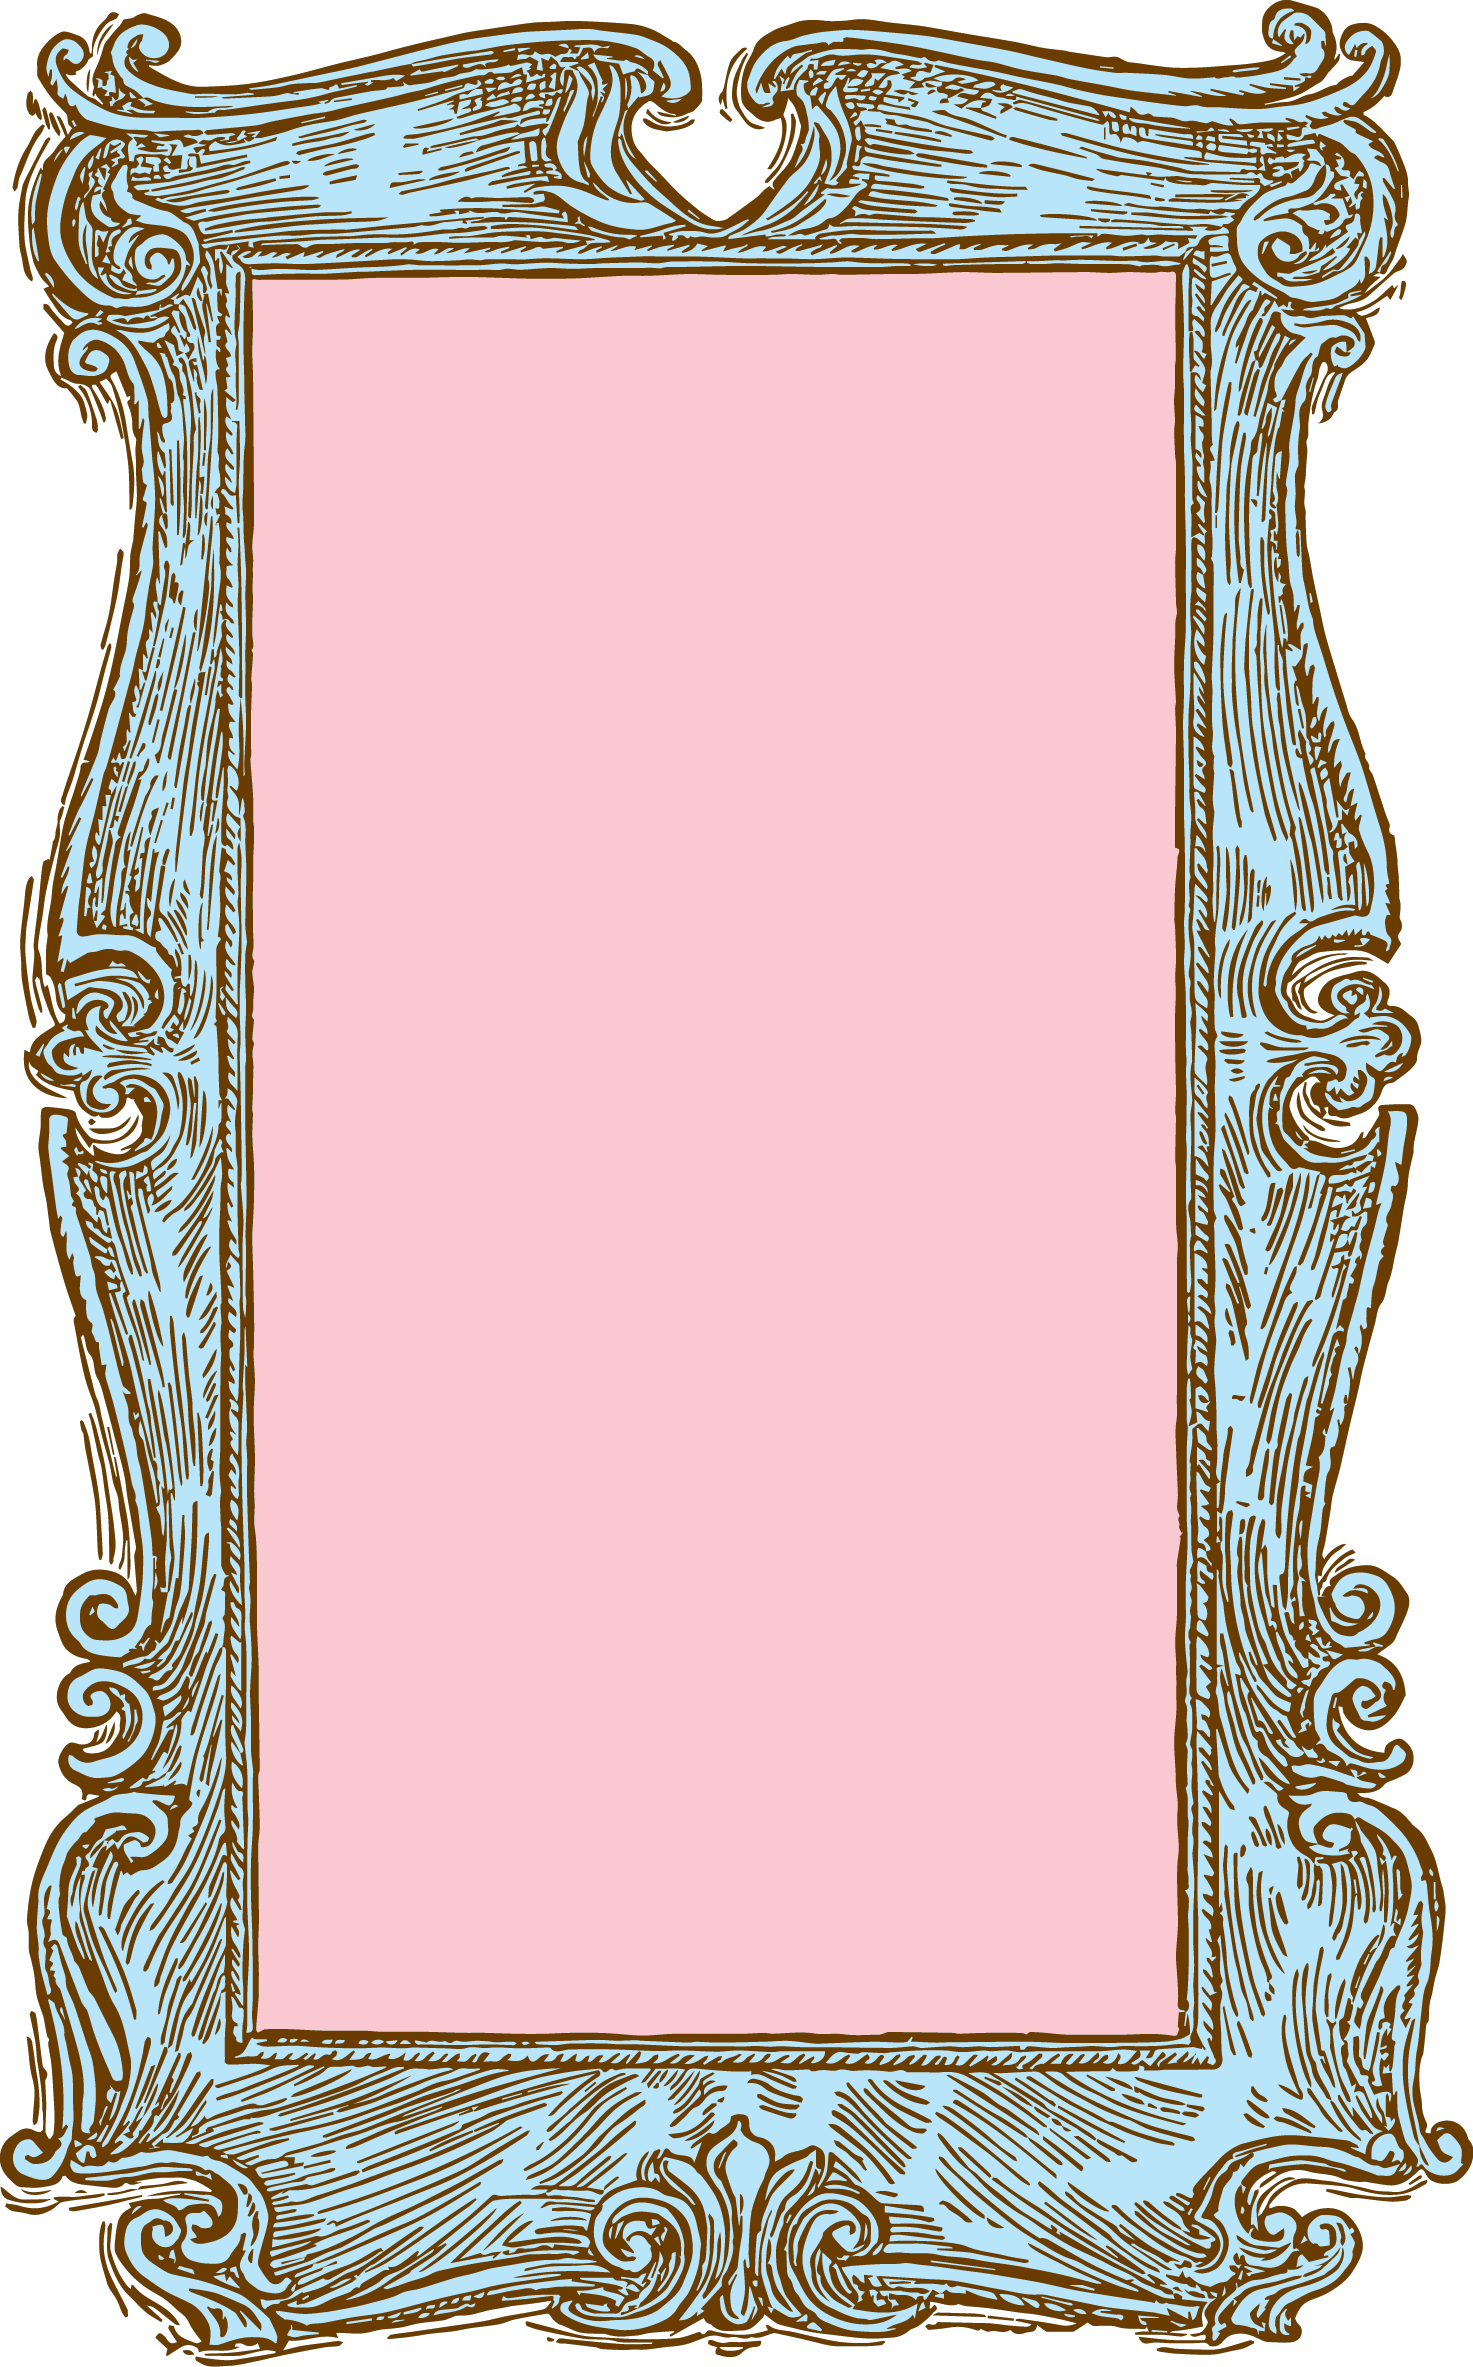 Free stock image wooden. Decorative vintage frame vector png stock